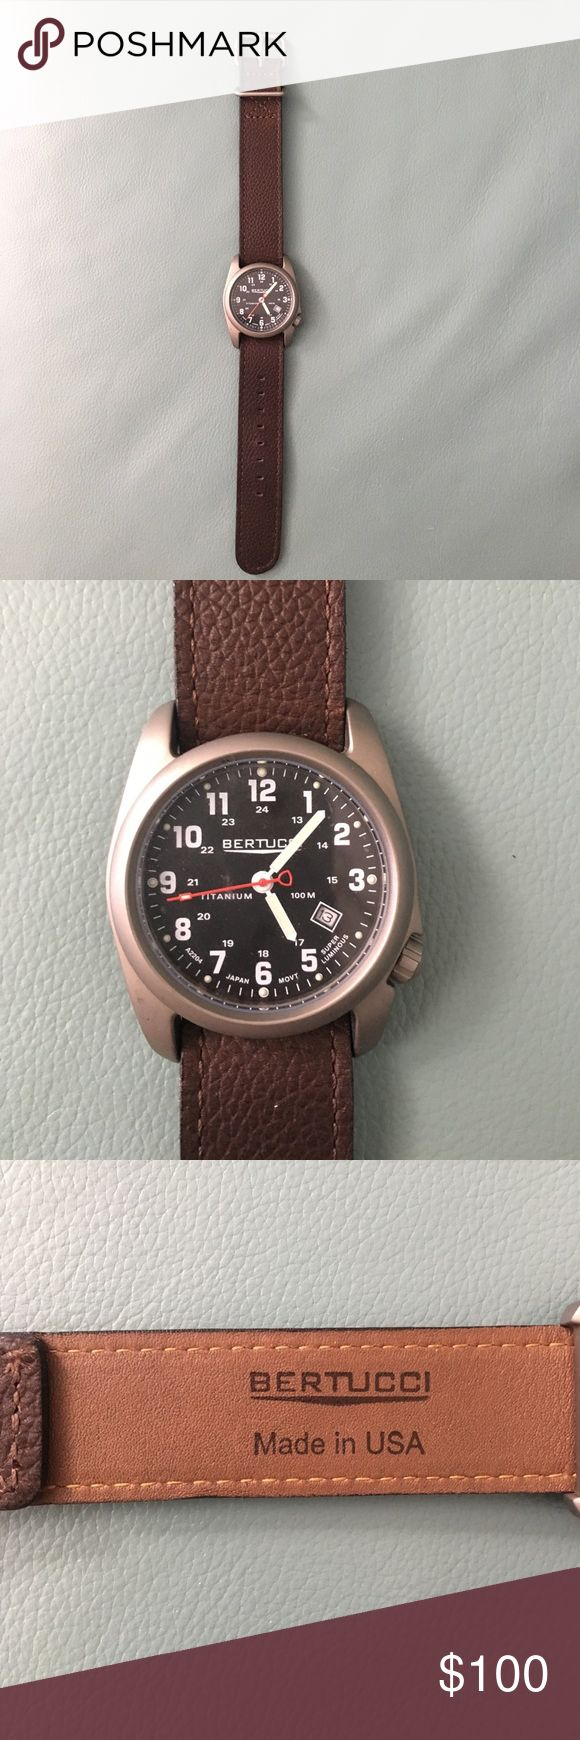 Bertucci brown leather watch  NEVER BEEN WORN Bertucci brown leather watch! Never been worn...clear protective cover still on the face and back of the watch! Bertucci Accessories Jewelry